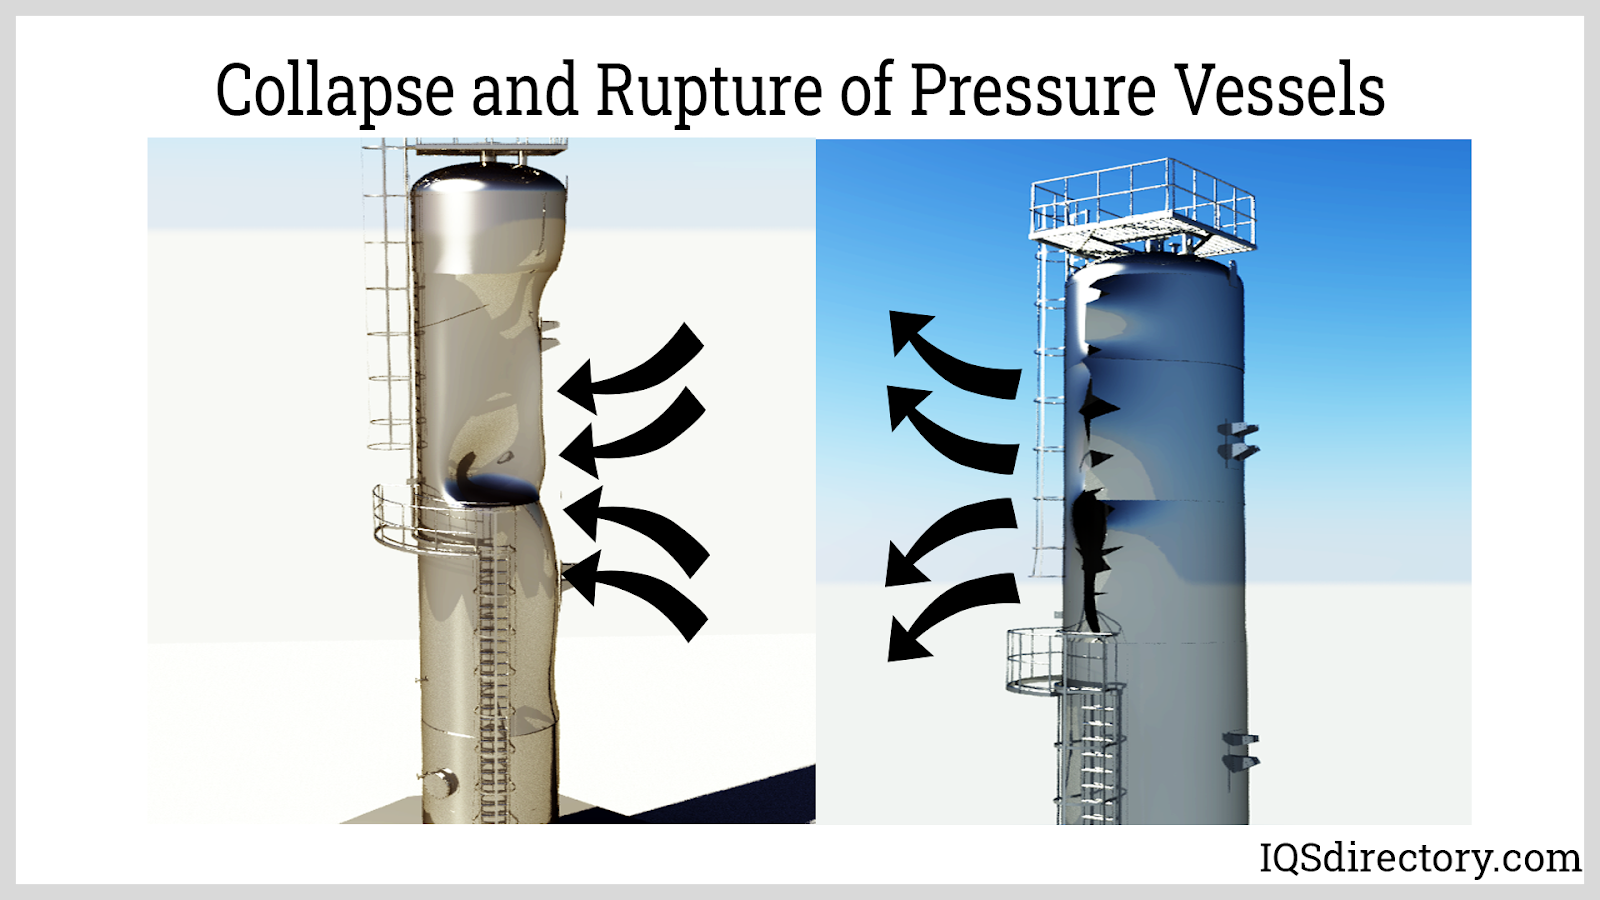 Collapse and Rupture of Pressure Vessels